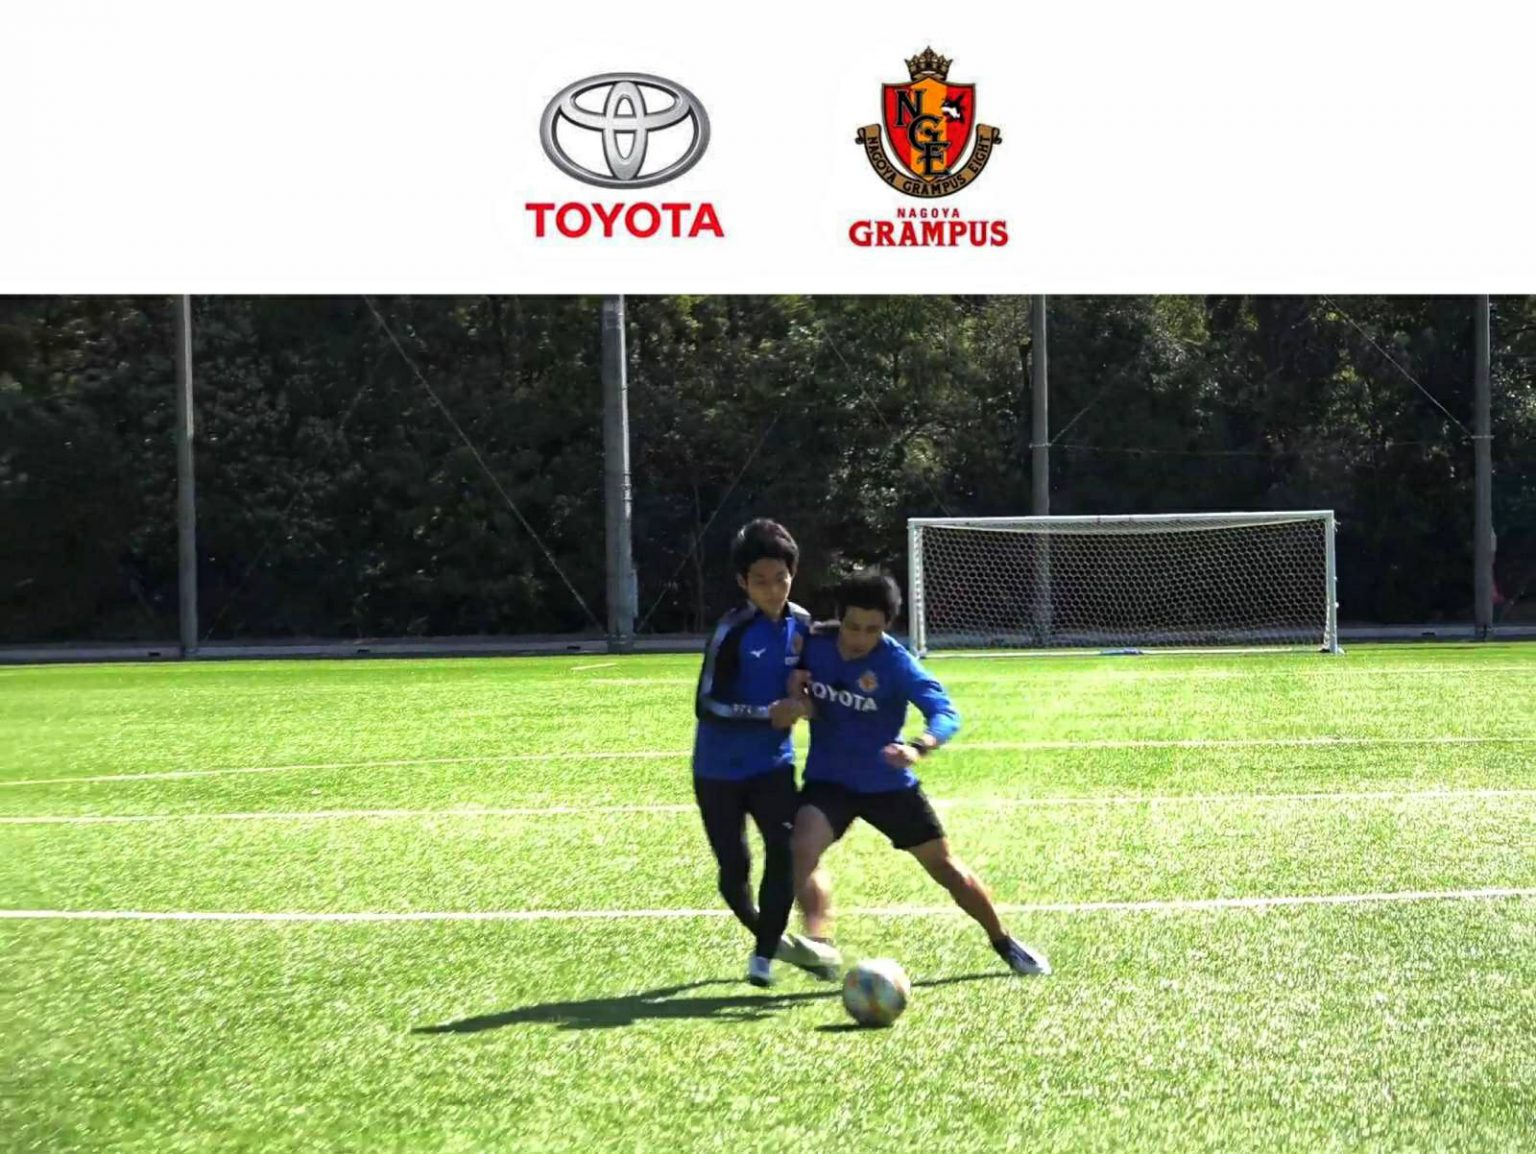 Toyota, Nagoya Grampus team up for 'Toyota Football for Tomorrow' in Southeast Asia